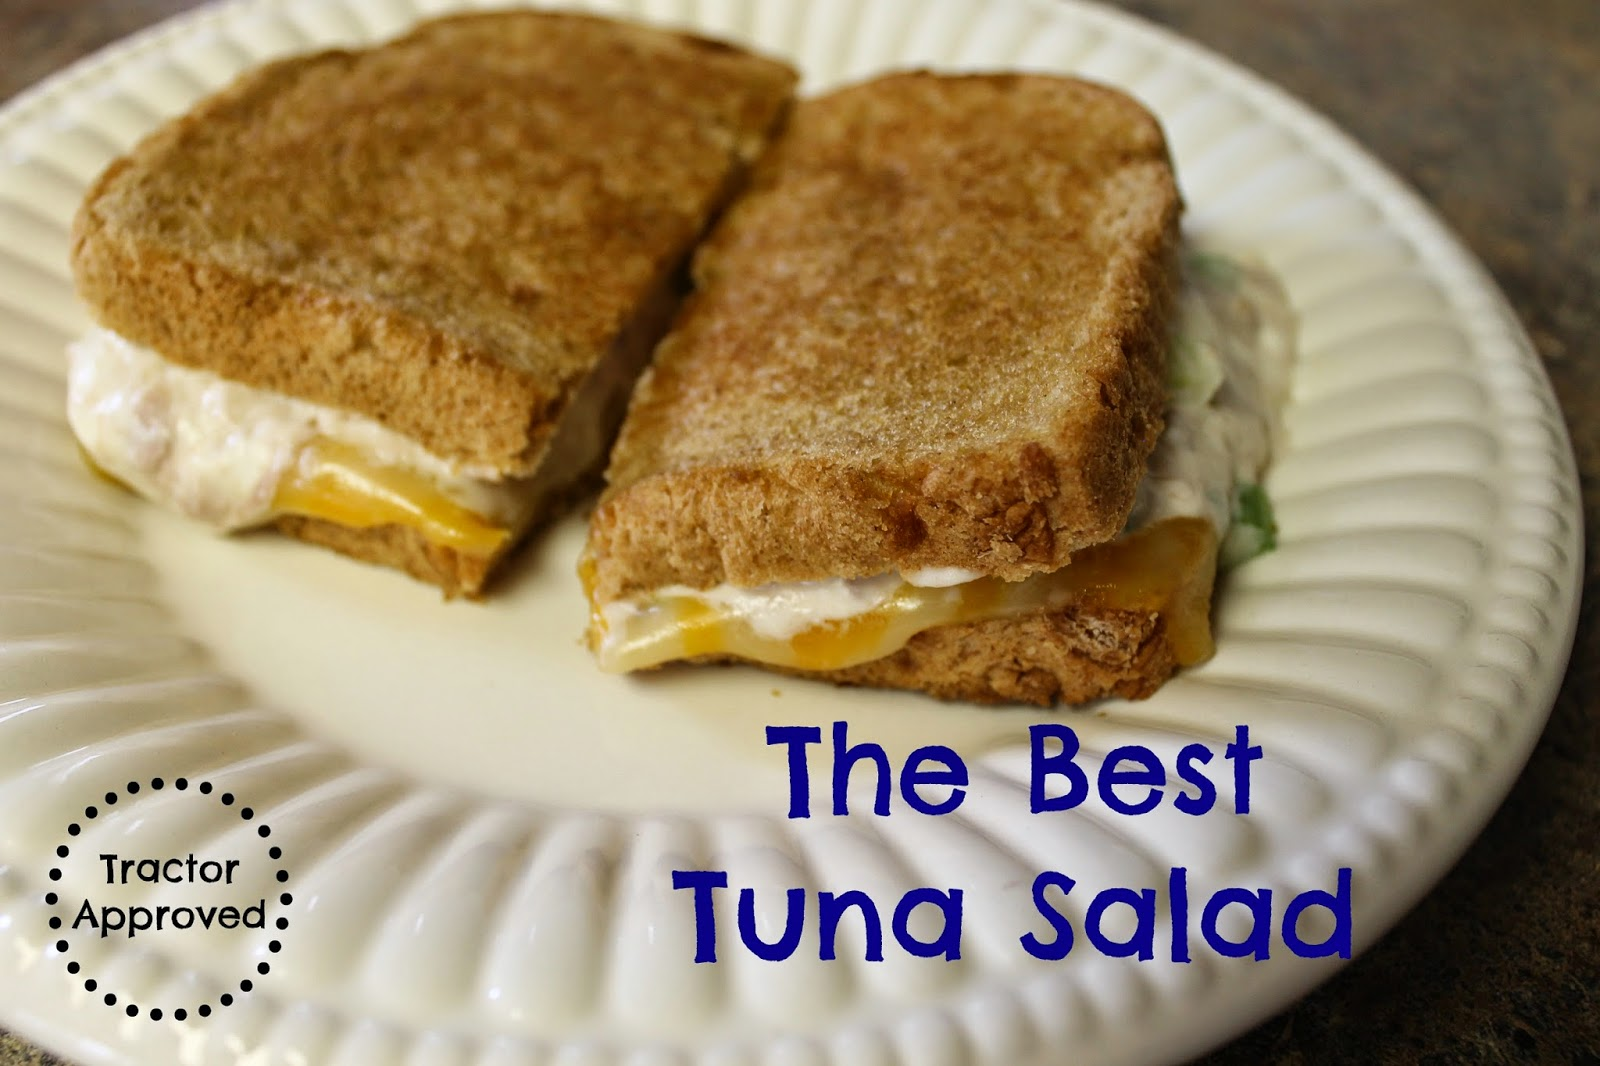 The Best Tuna Salad Recipe - Easy to make and great for melts!